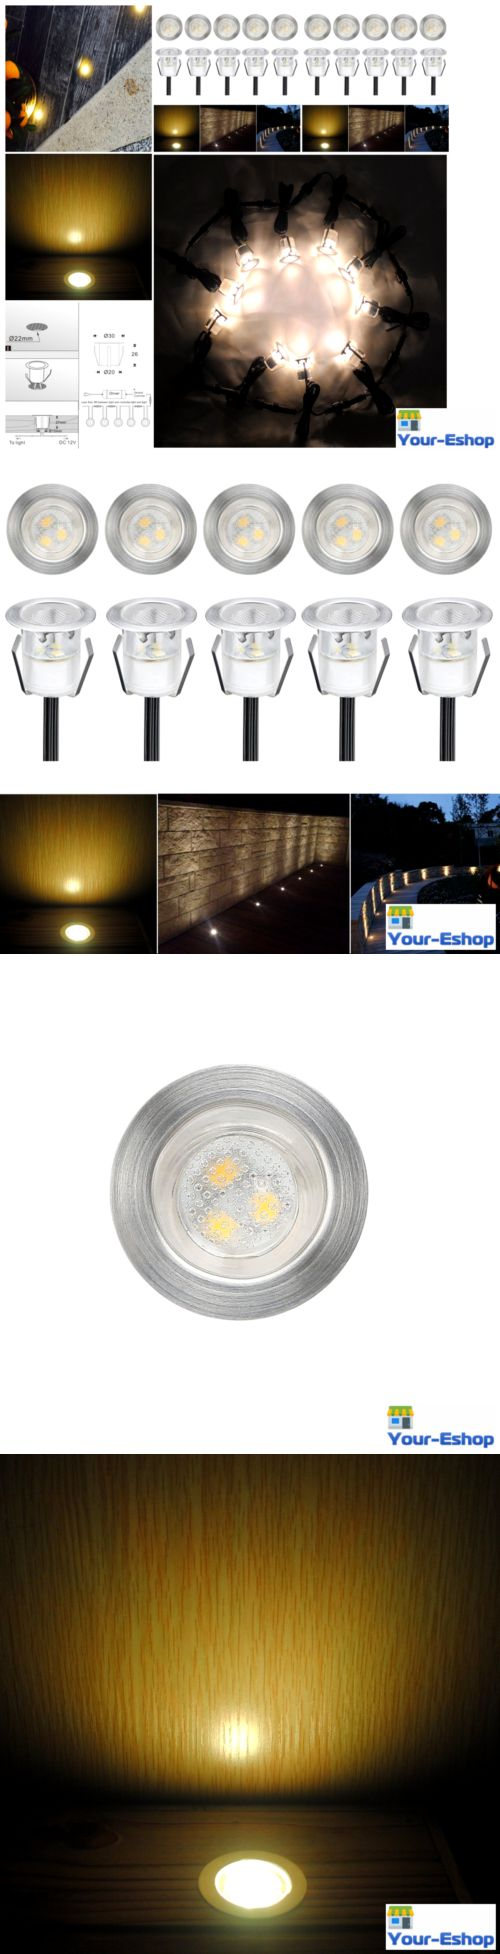 Landscape and Walkway Lights 94940: 10 12V Led Deck Lights Low Voltage Lighting Kit Waterproof Outdoor Garden Patio -> BUY IT NOW ONLY: $59.63 on eBay!